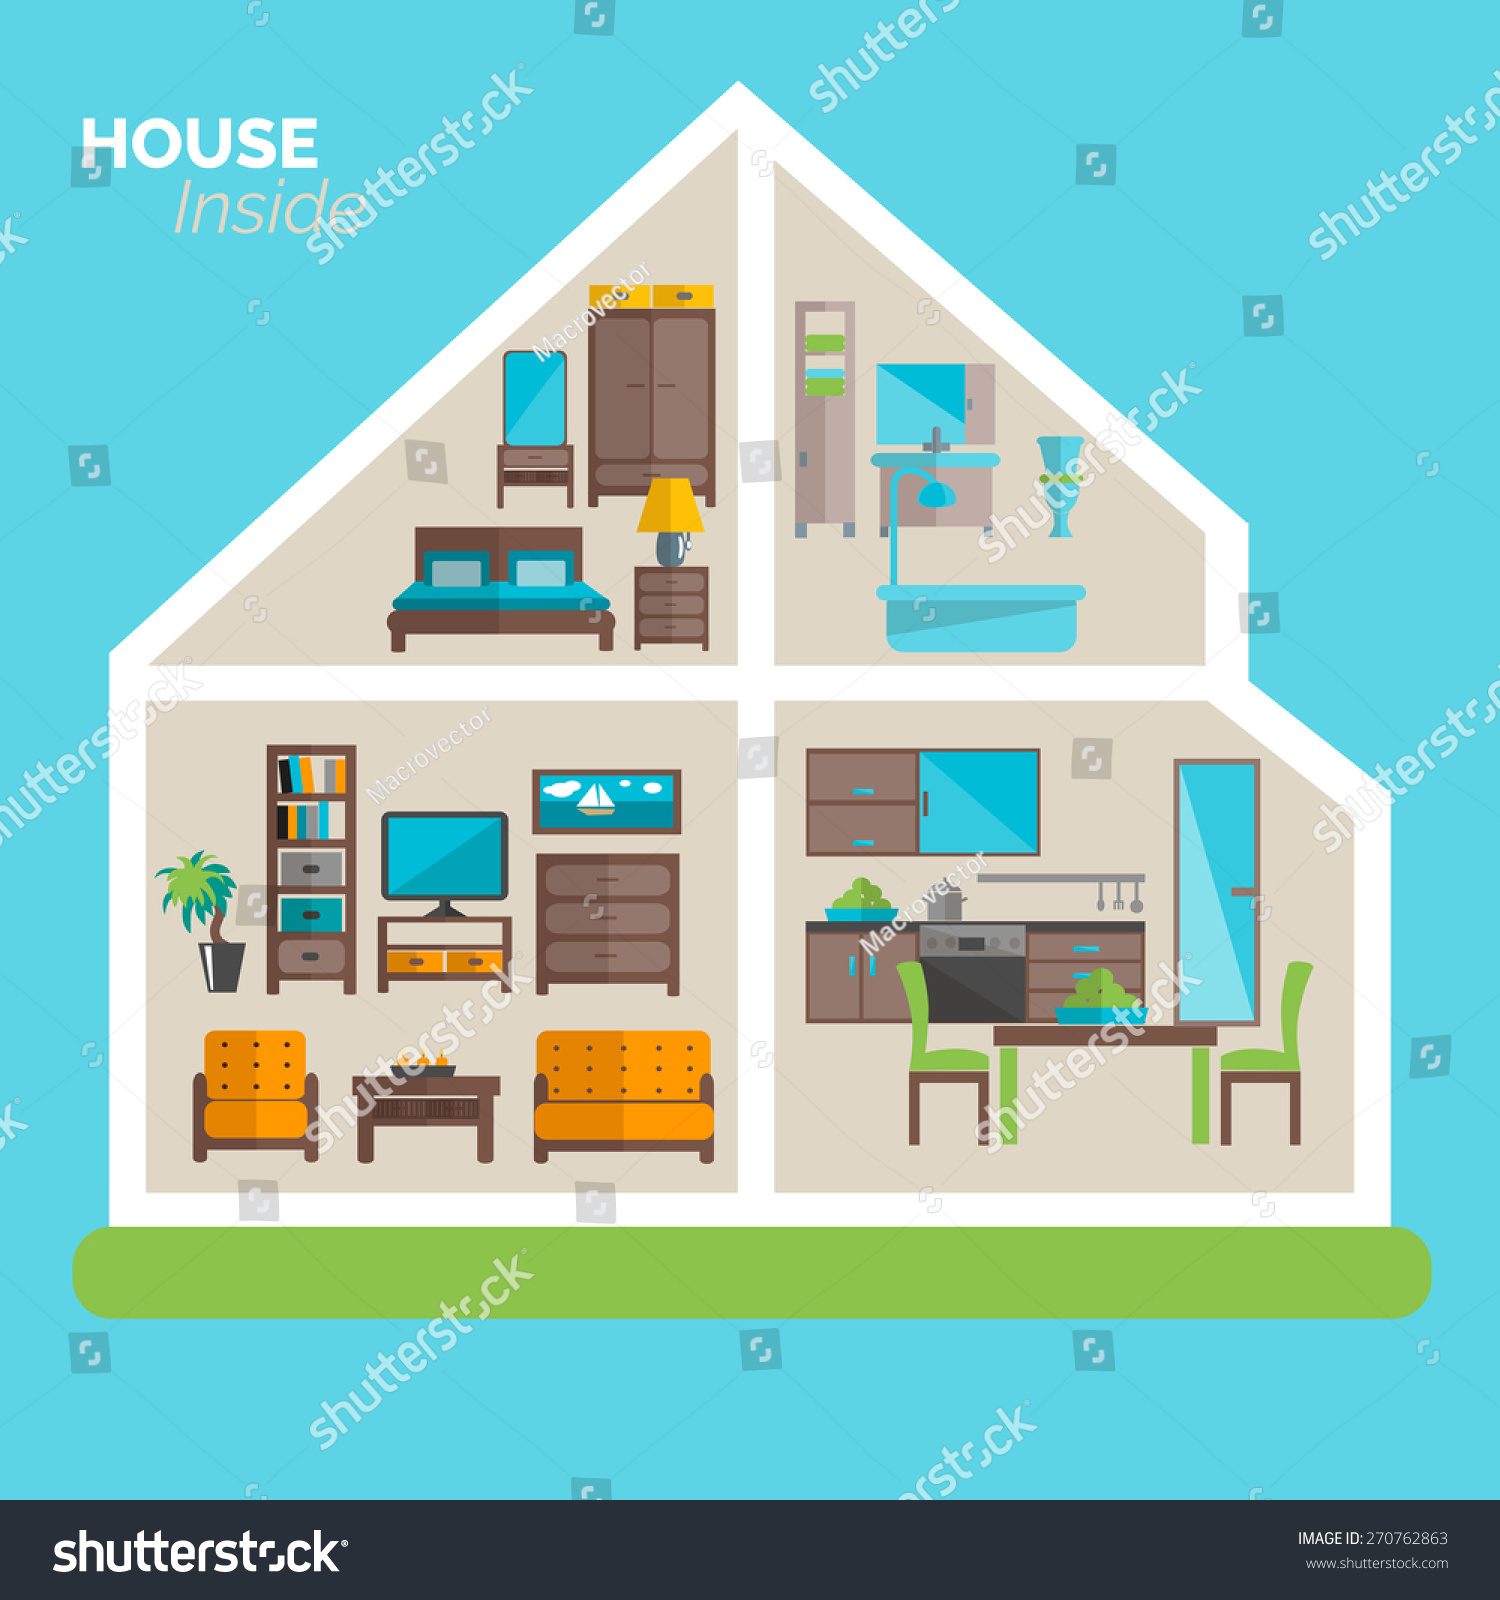 Awesome House Inside Interior Design Ideas Poster For Sleeping Sitting Rooms And  Kitchen Furniture Flat Abstract Vector